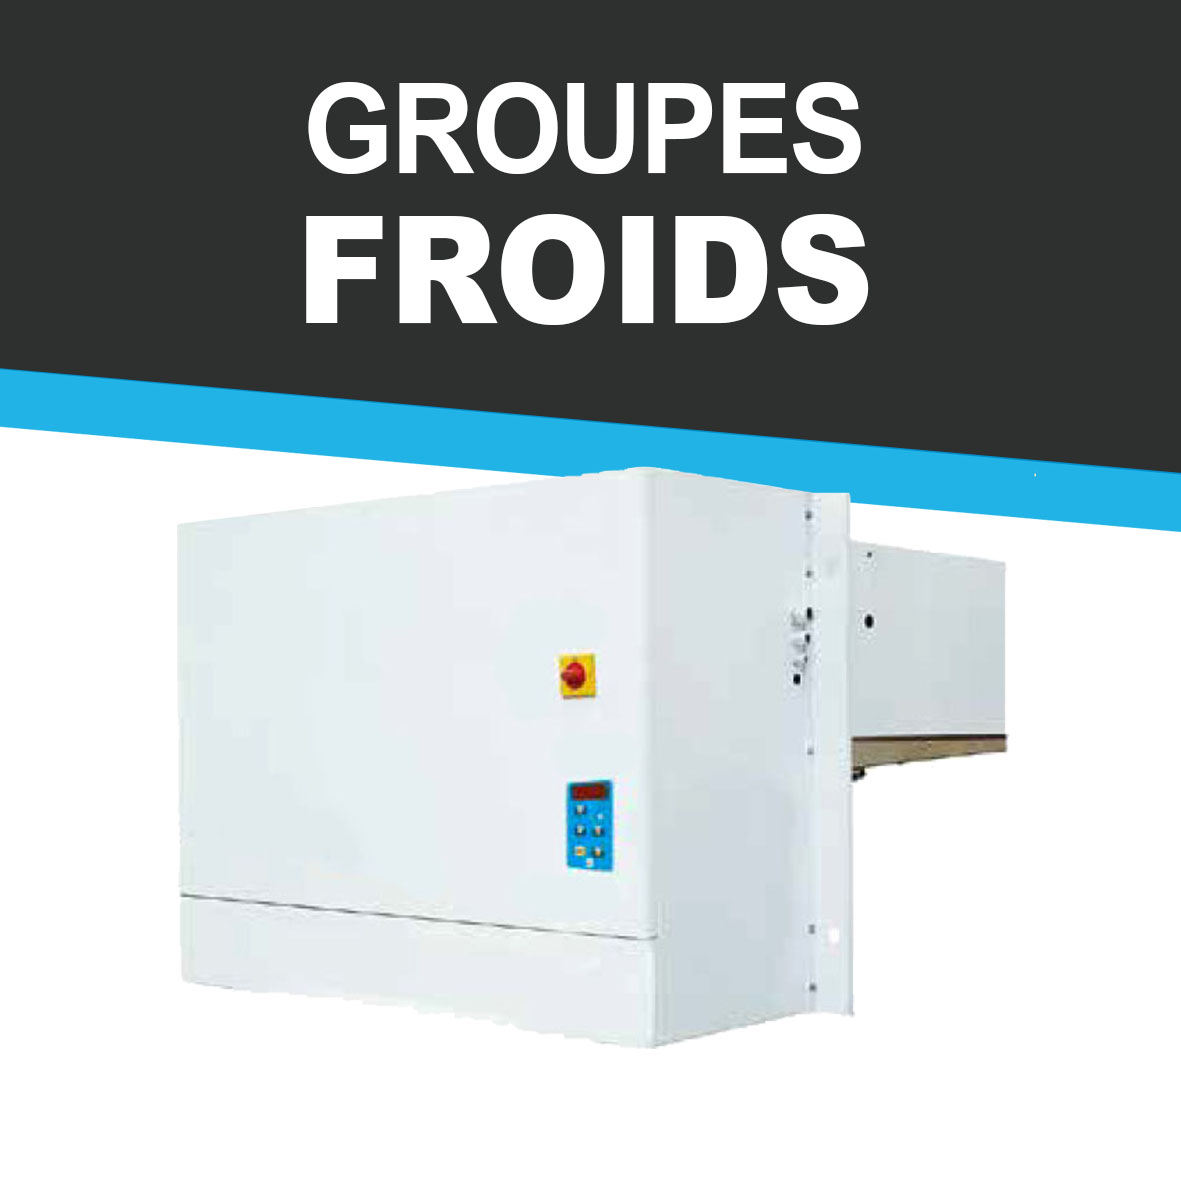 Guide du groupe froid